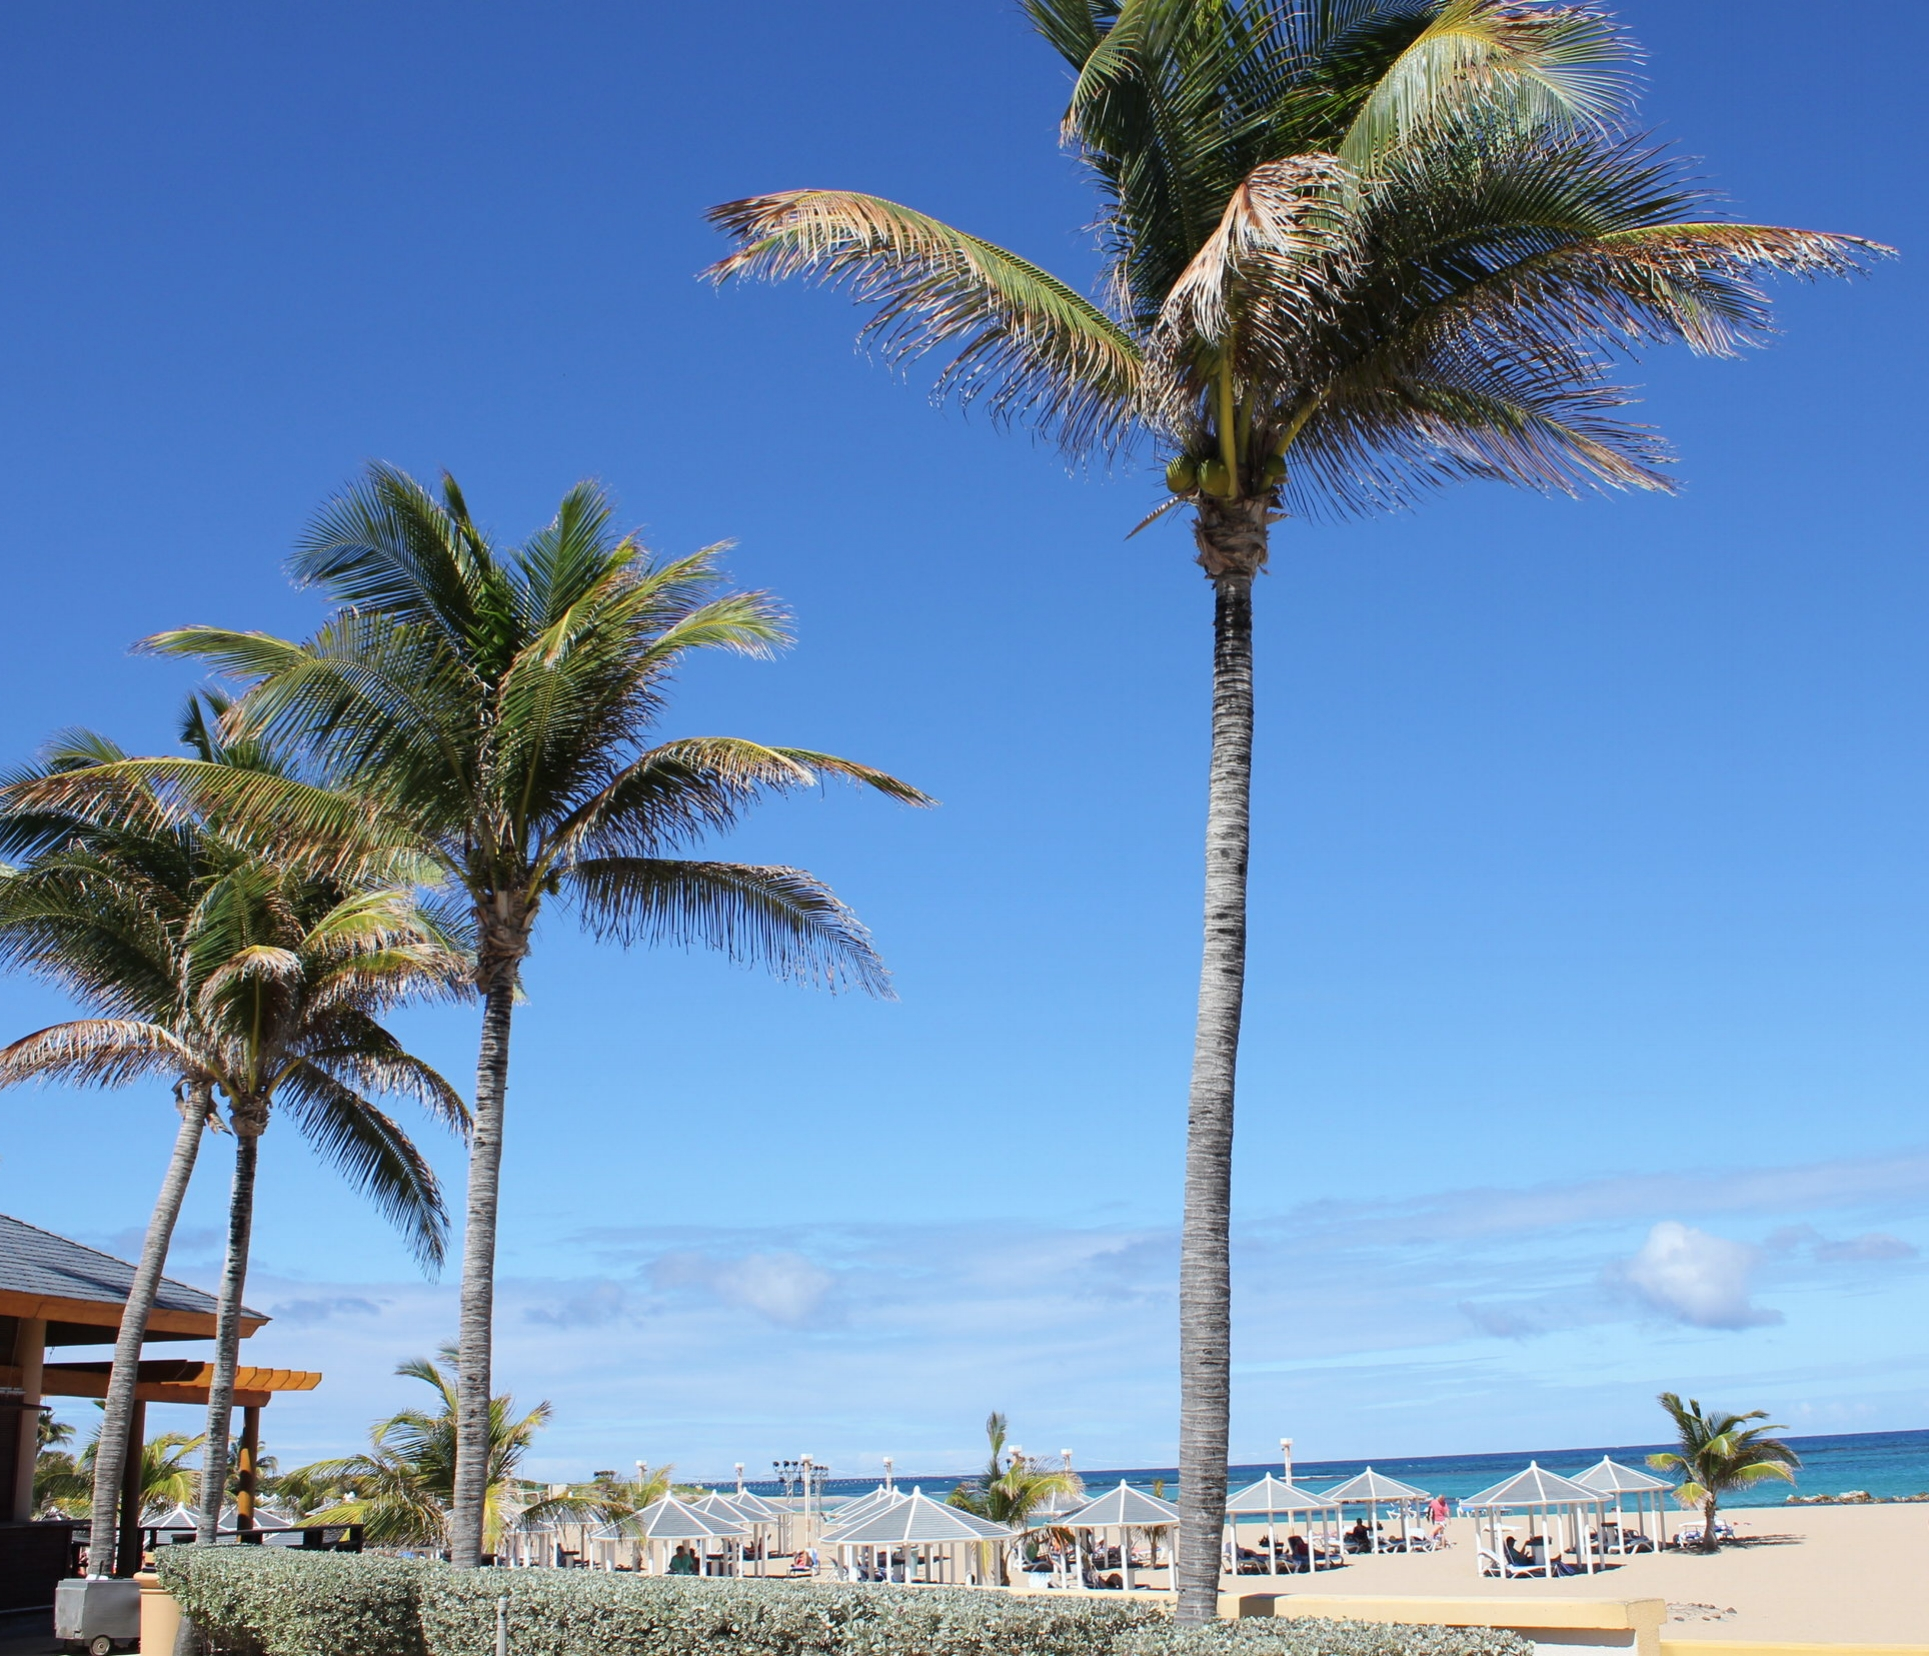 Marriott Resort St. Kitts – Approach to the beach